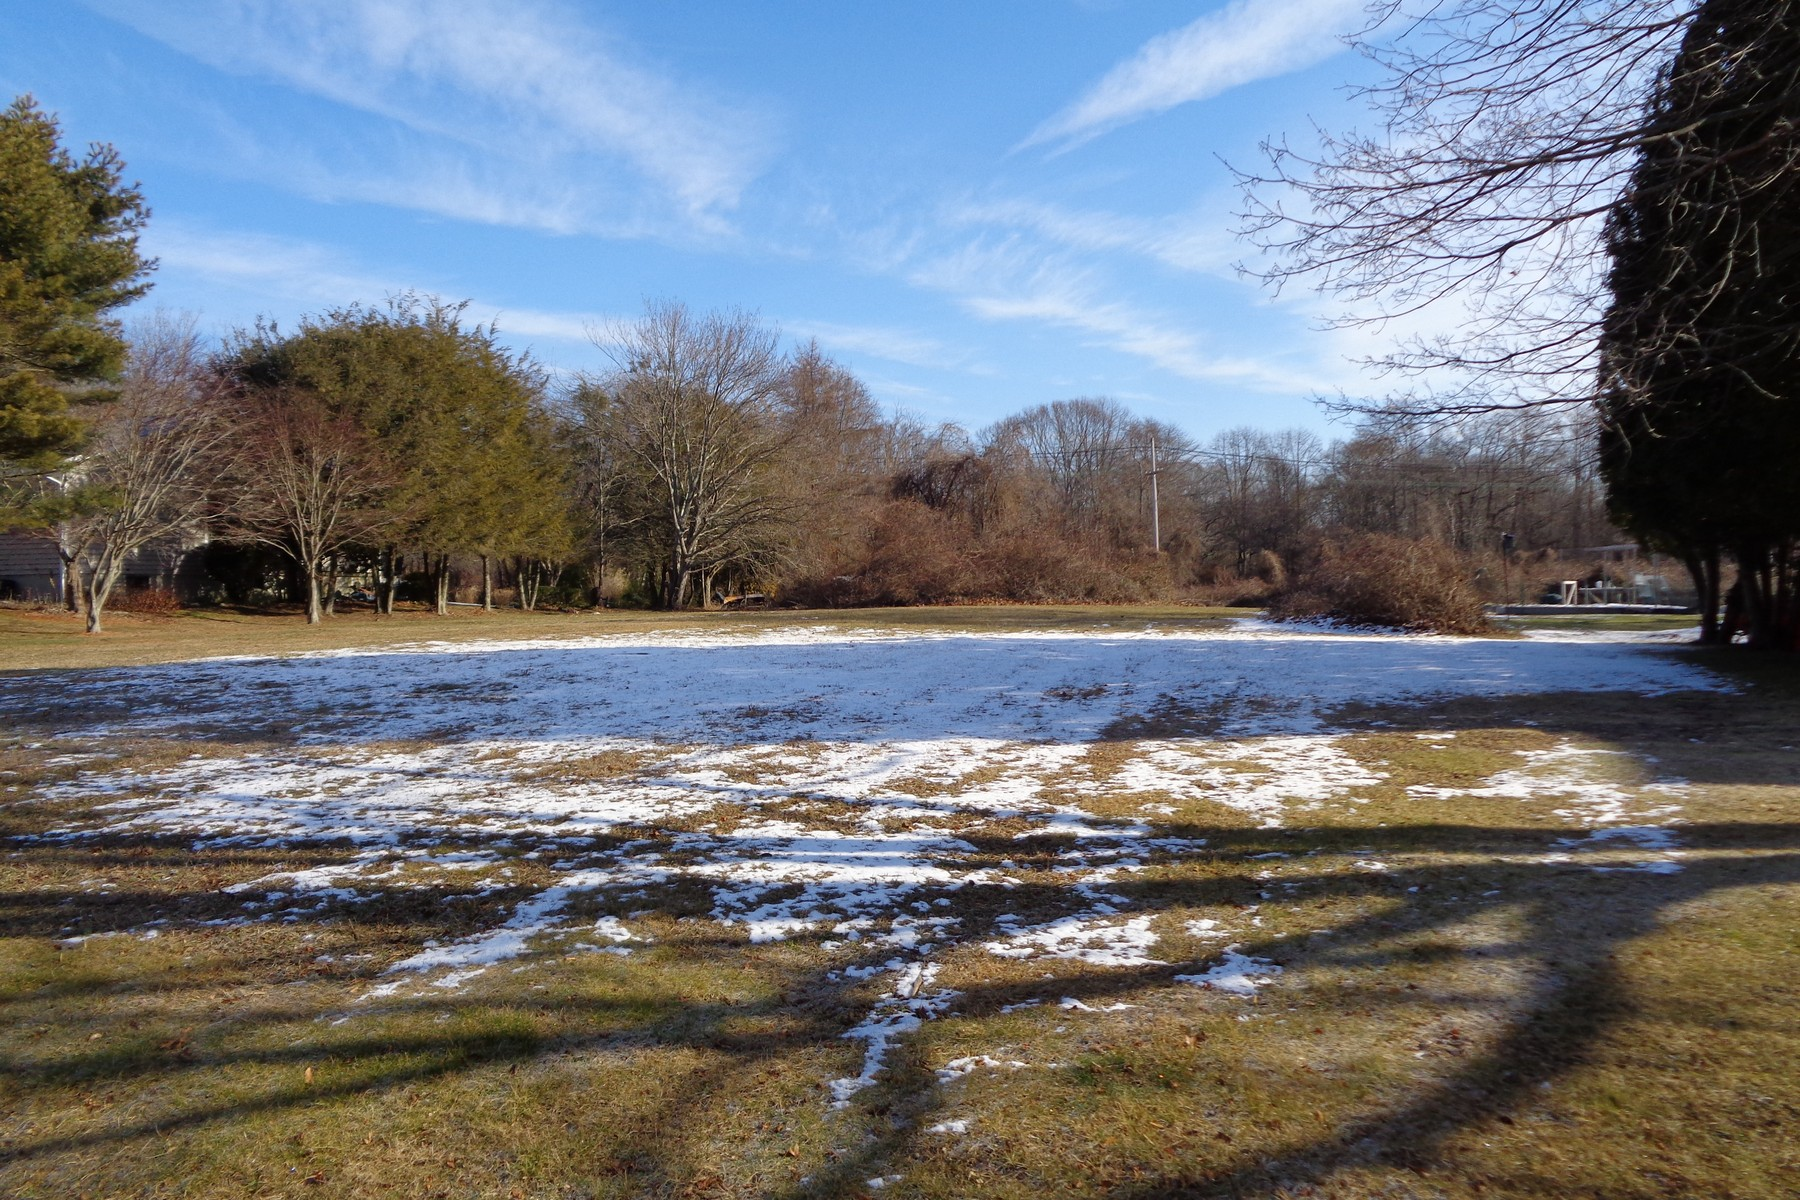 Land for Sale at Cleared And Level Building Lot 258 Neptune Dr Groton, Connecticut 06340 United States